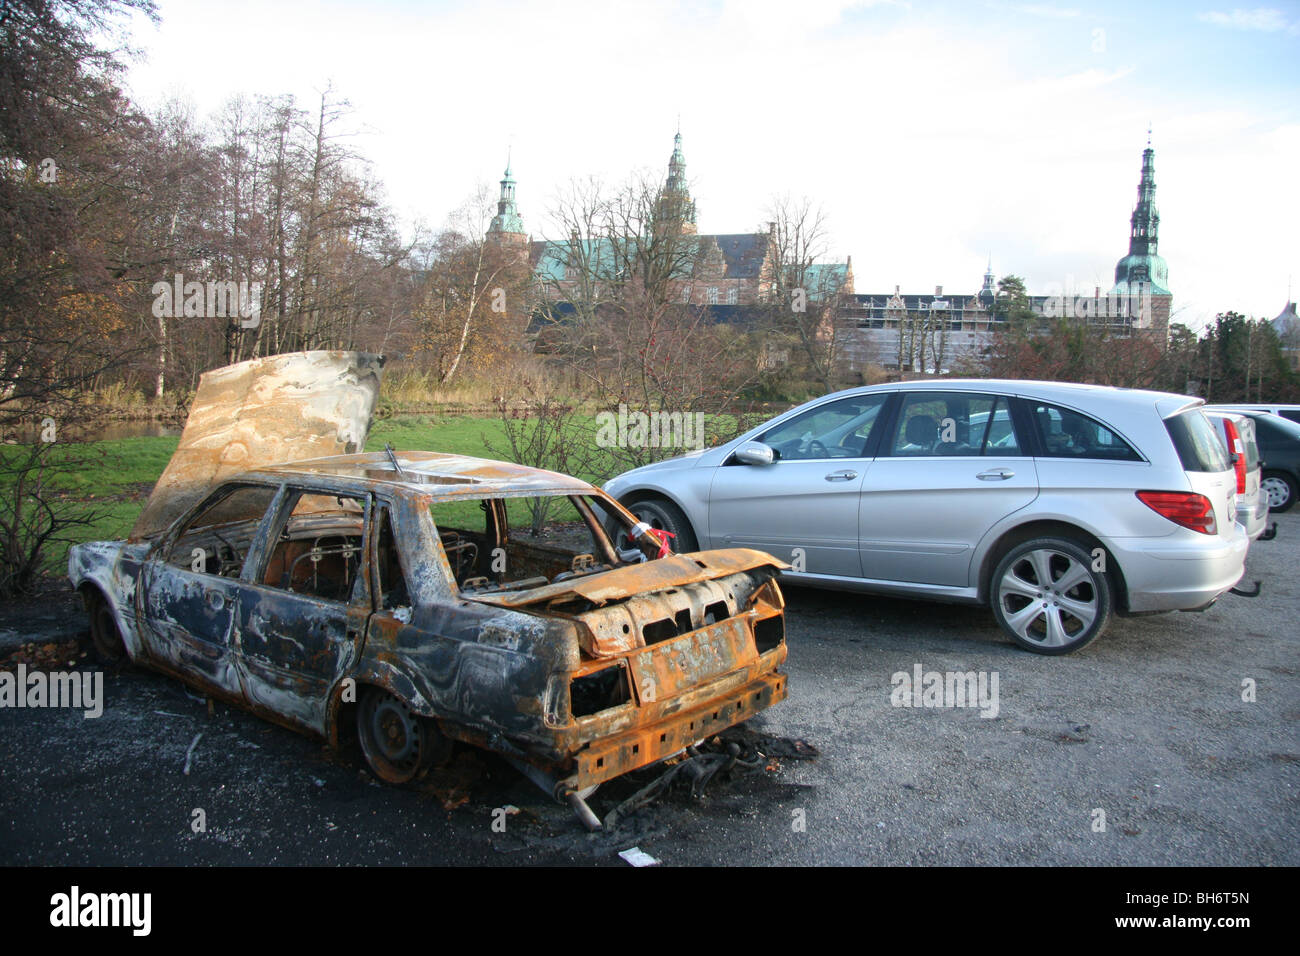 A burnt out car contrasting with new model cars and the castle in the parking lot of Frederiksborg Castle, Hilleroed, - Stock Image